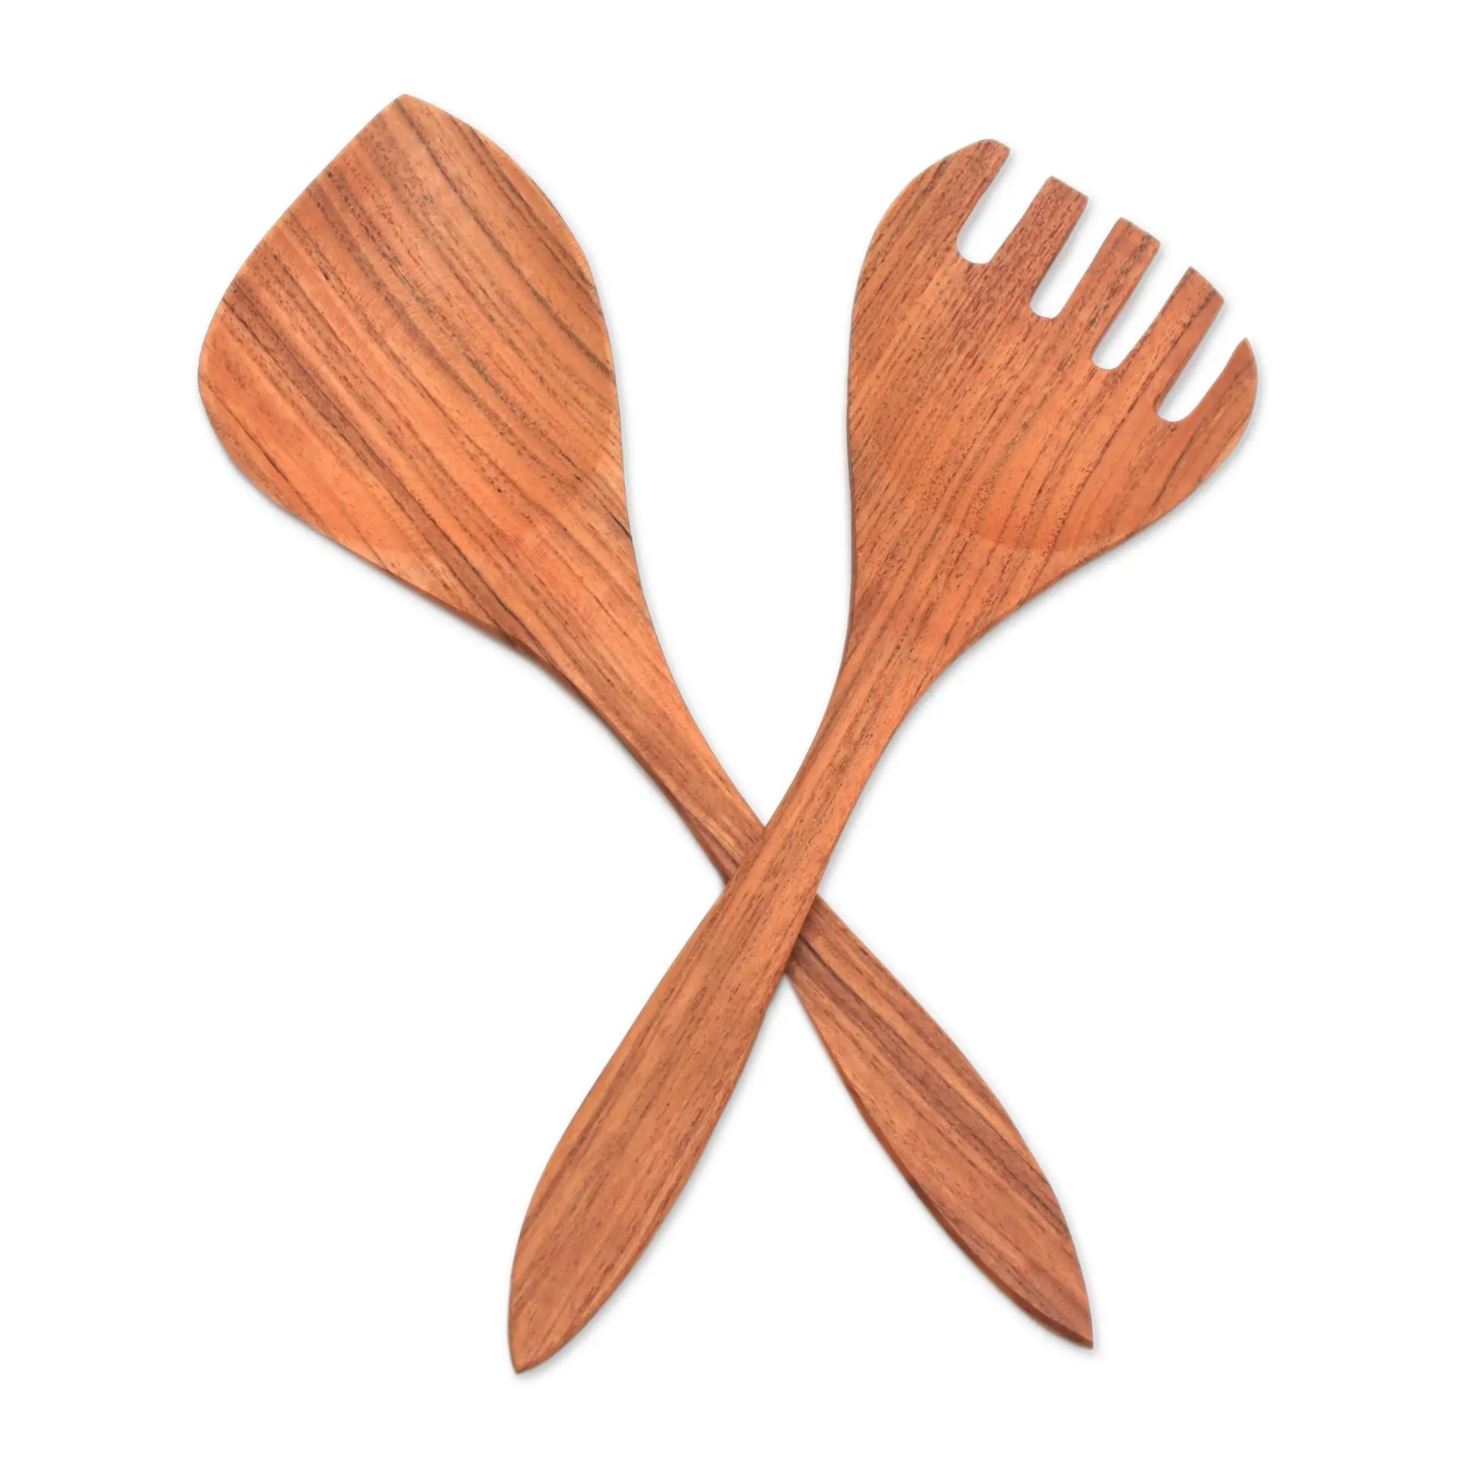 UNICEF Teak Wood Serving Utensils on a white background